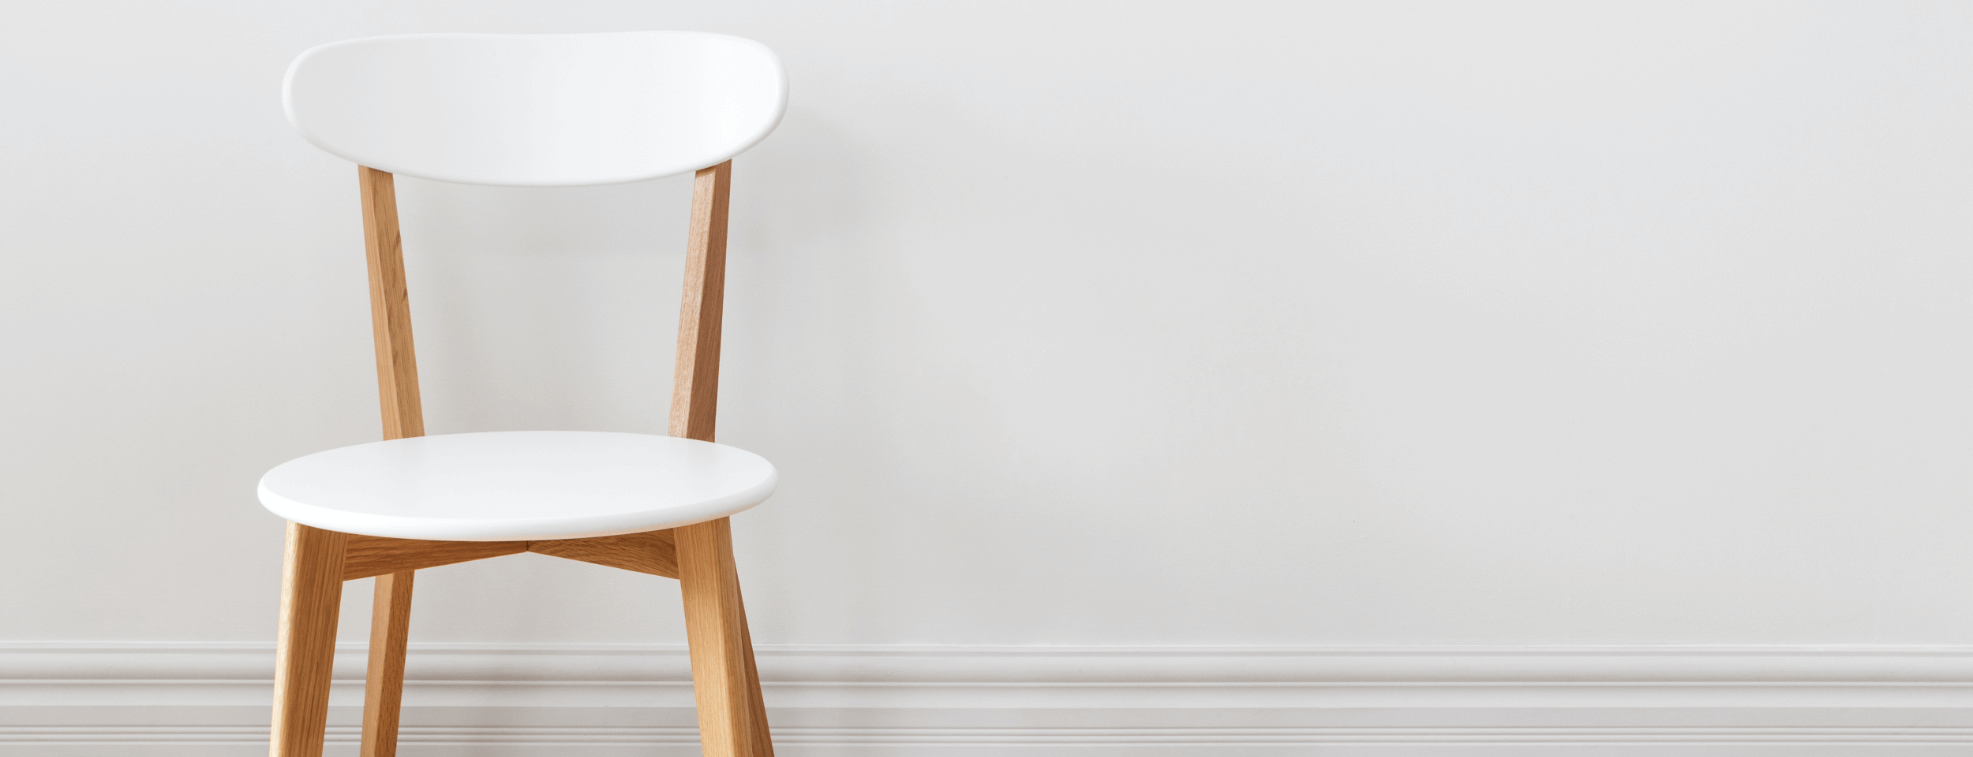 Traditional looking white chair on a white background